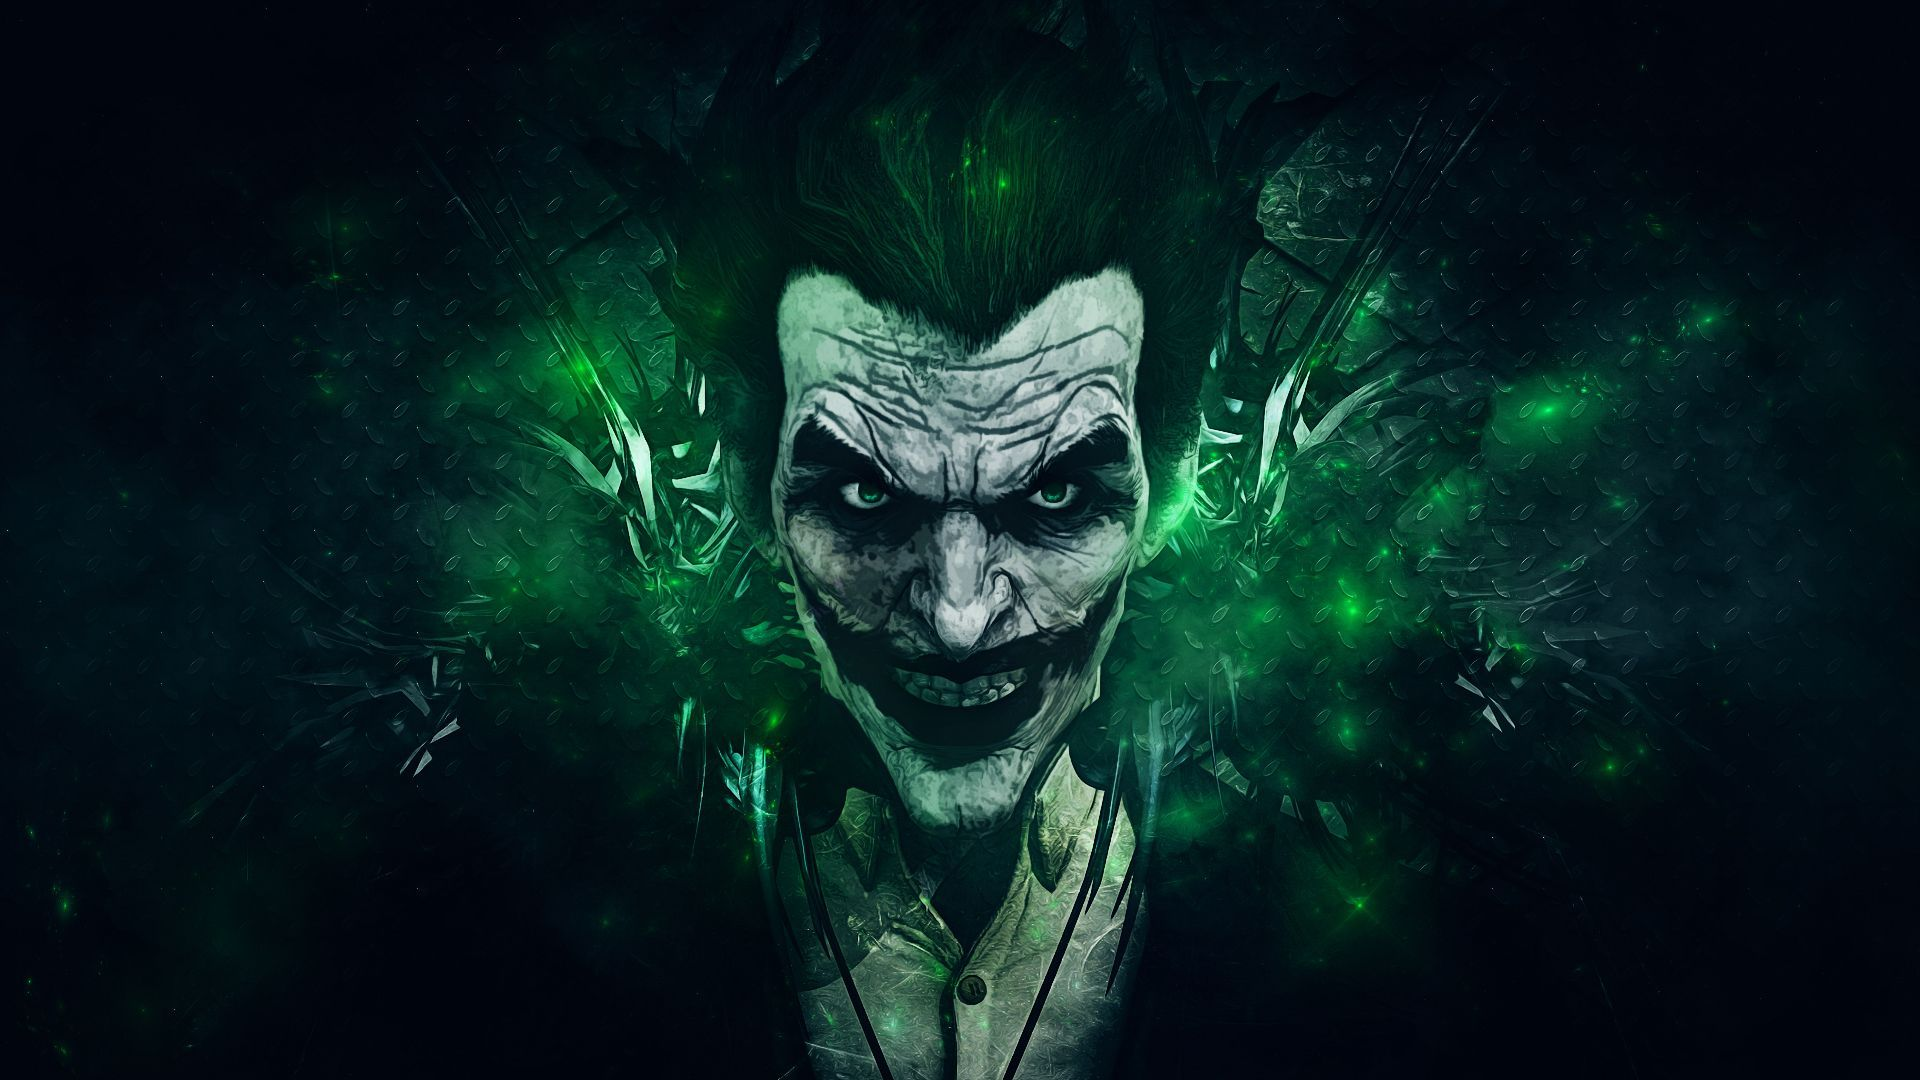 Mobile Joker Pictures High Resolution Wallpapers And Pictures Graphics For Pc Mac Tablet Laptop Mobi Joker Wallpapers Joker Images Batman Joker Wallpaper